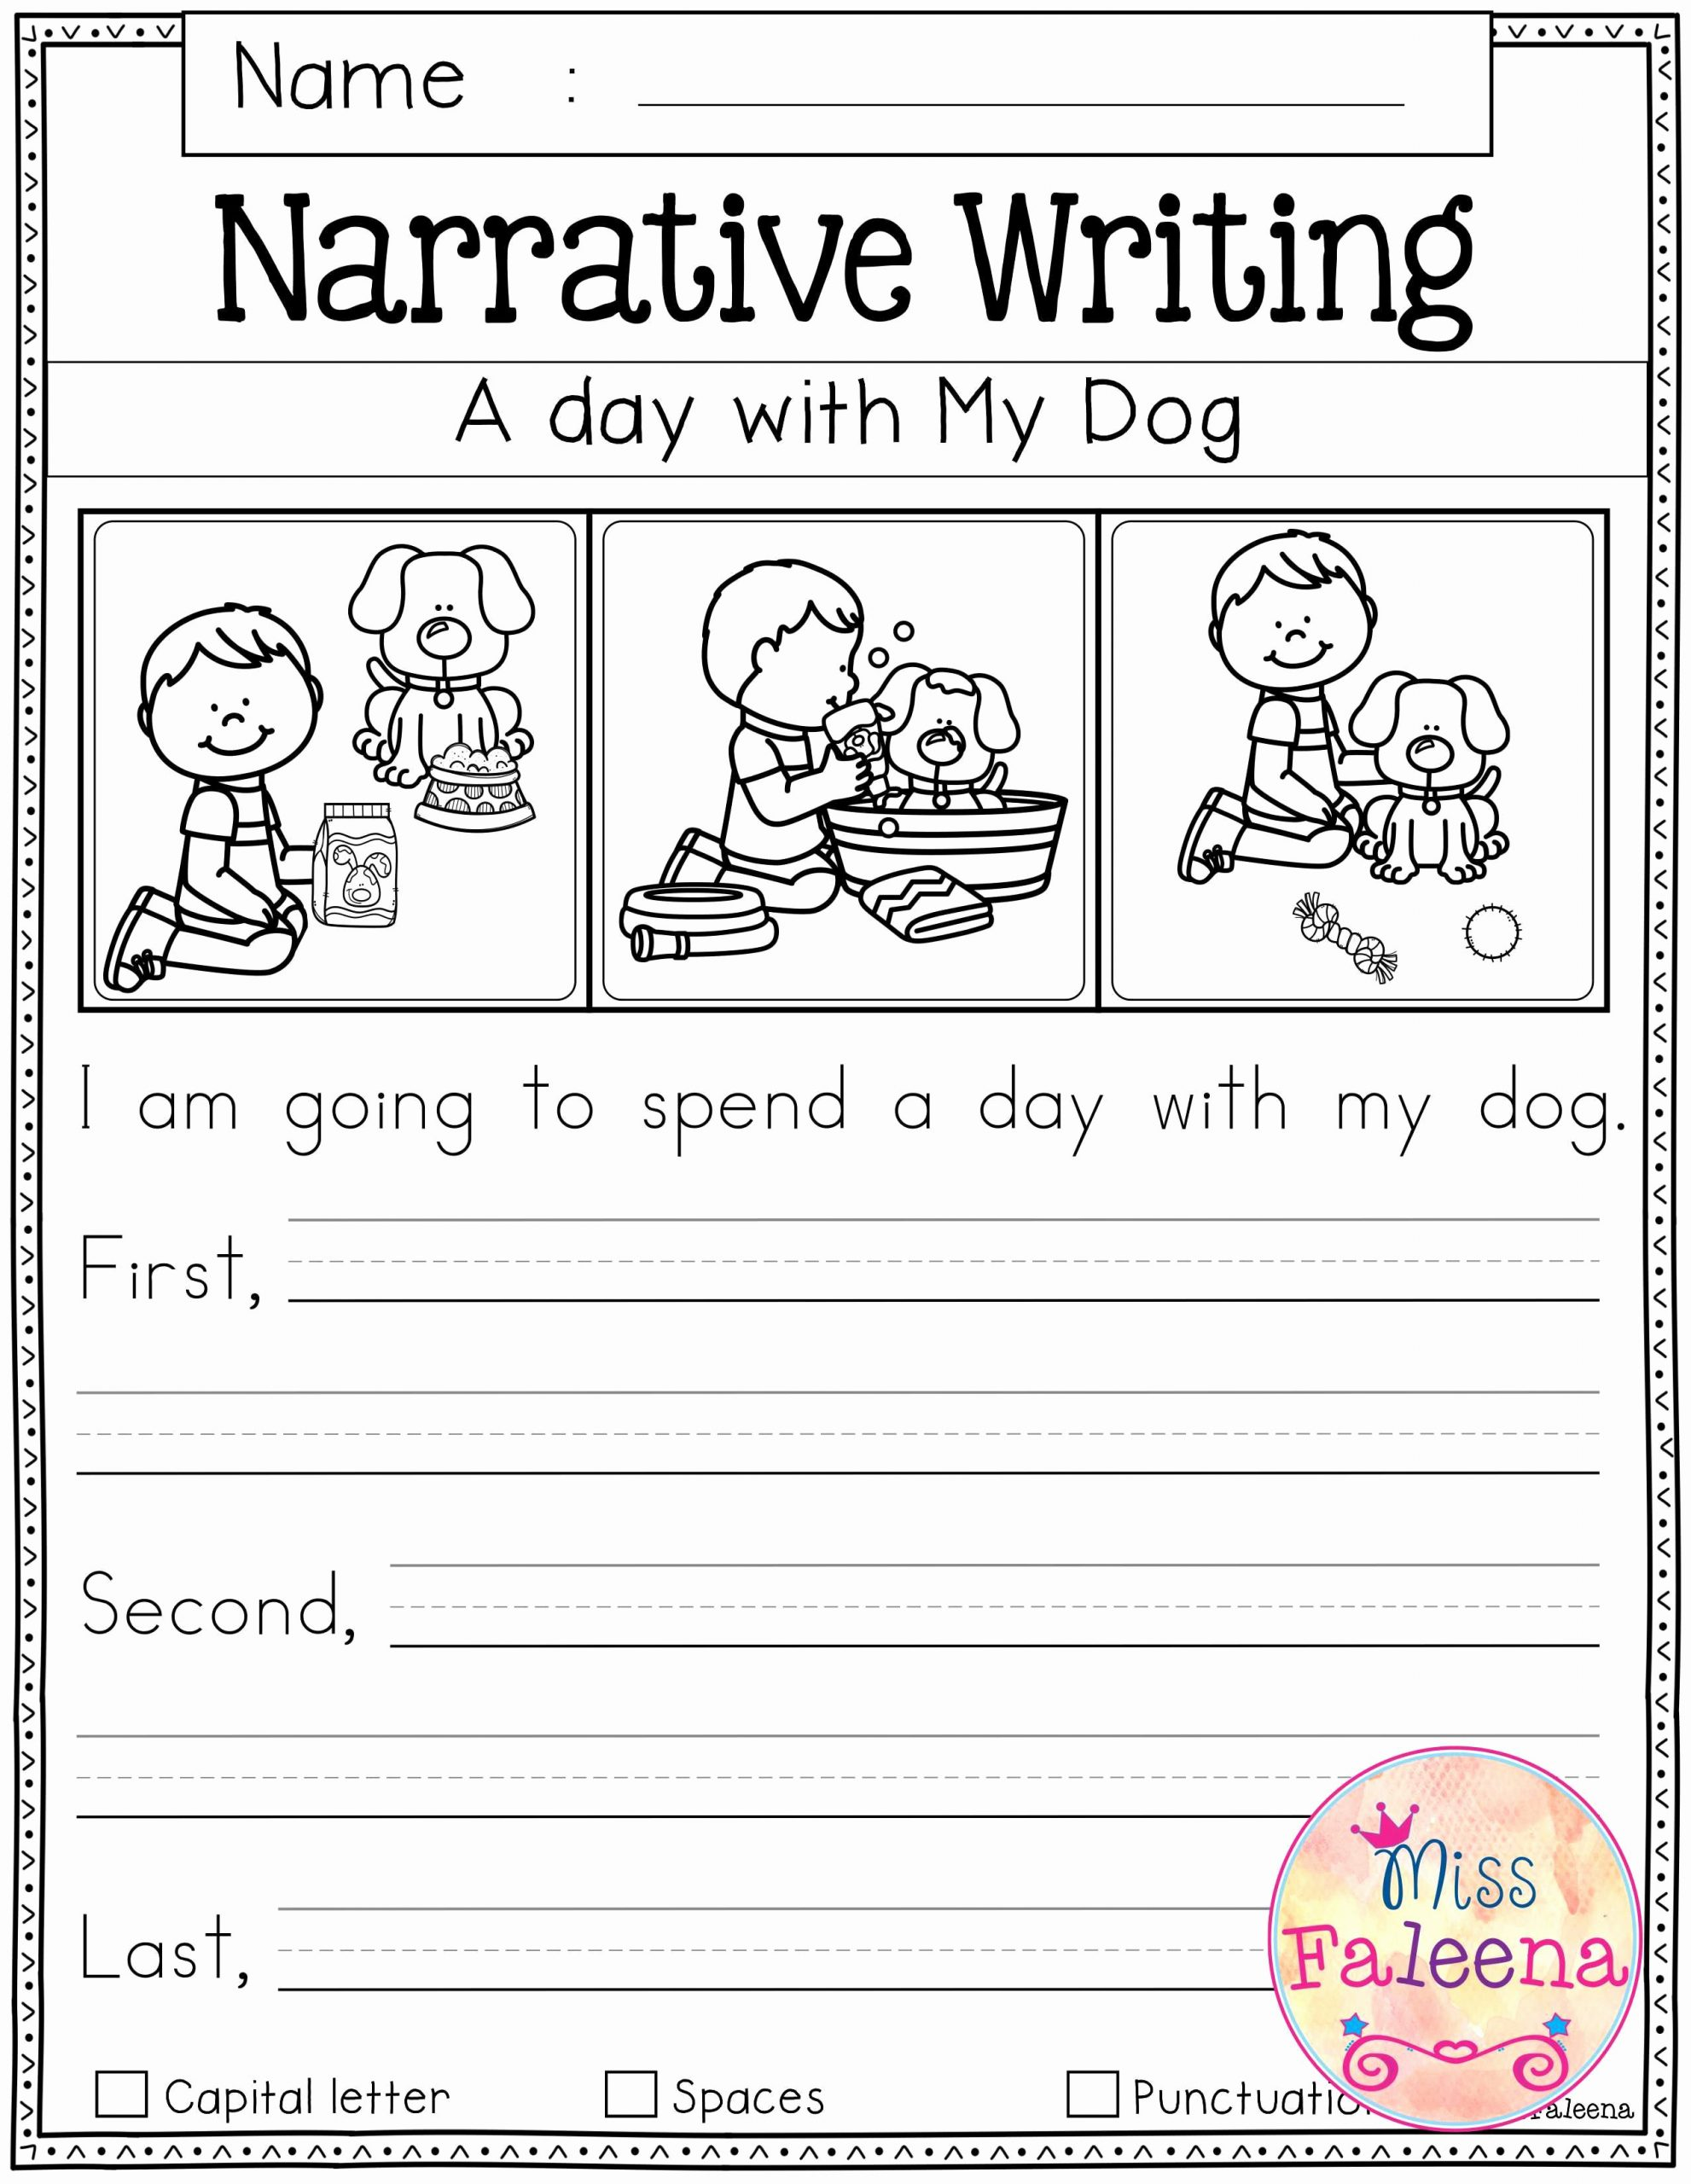 Worksheets for First Grade Writing Fresh Writing Worksheets for 1st Grade Free Printable